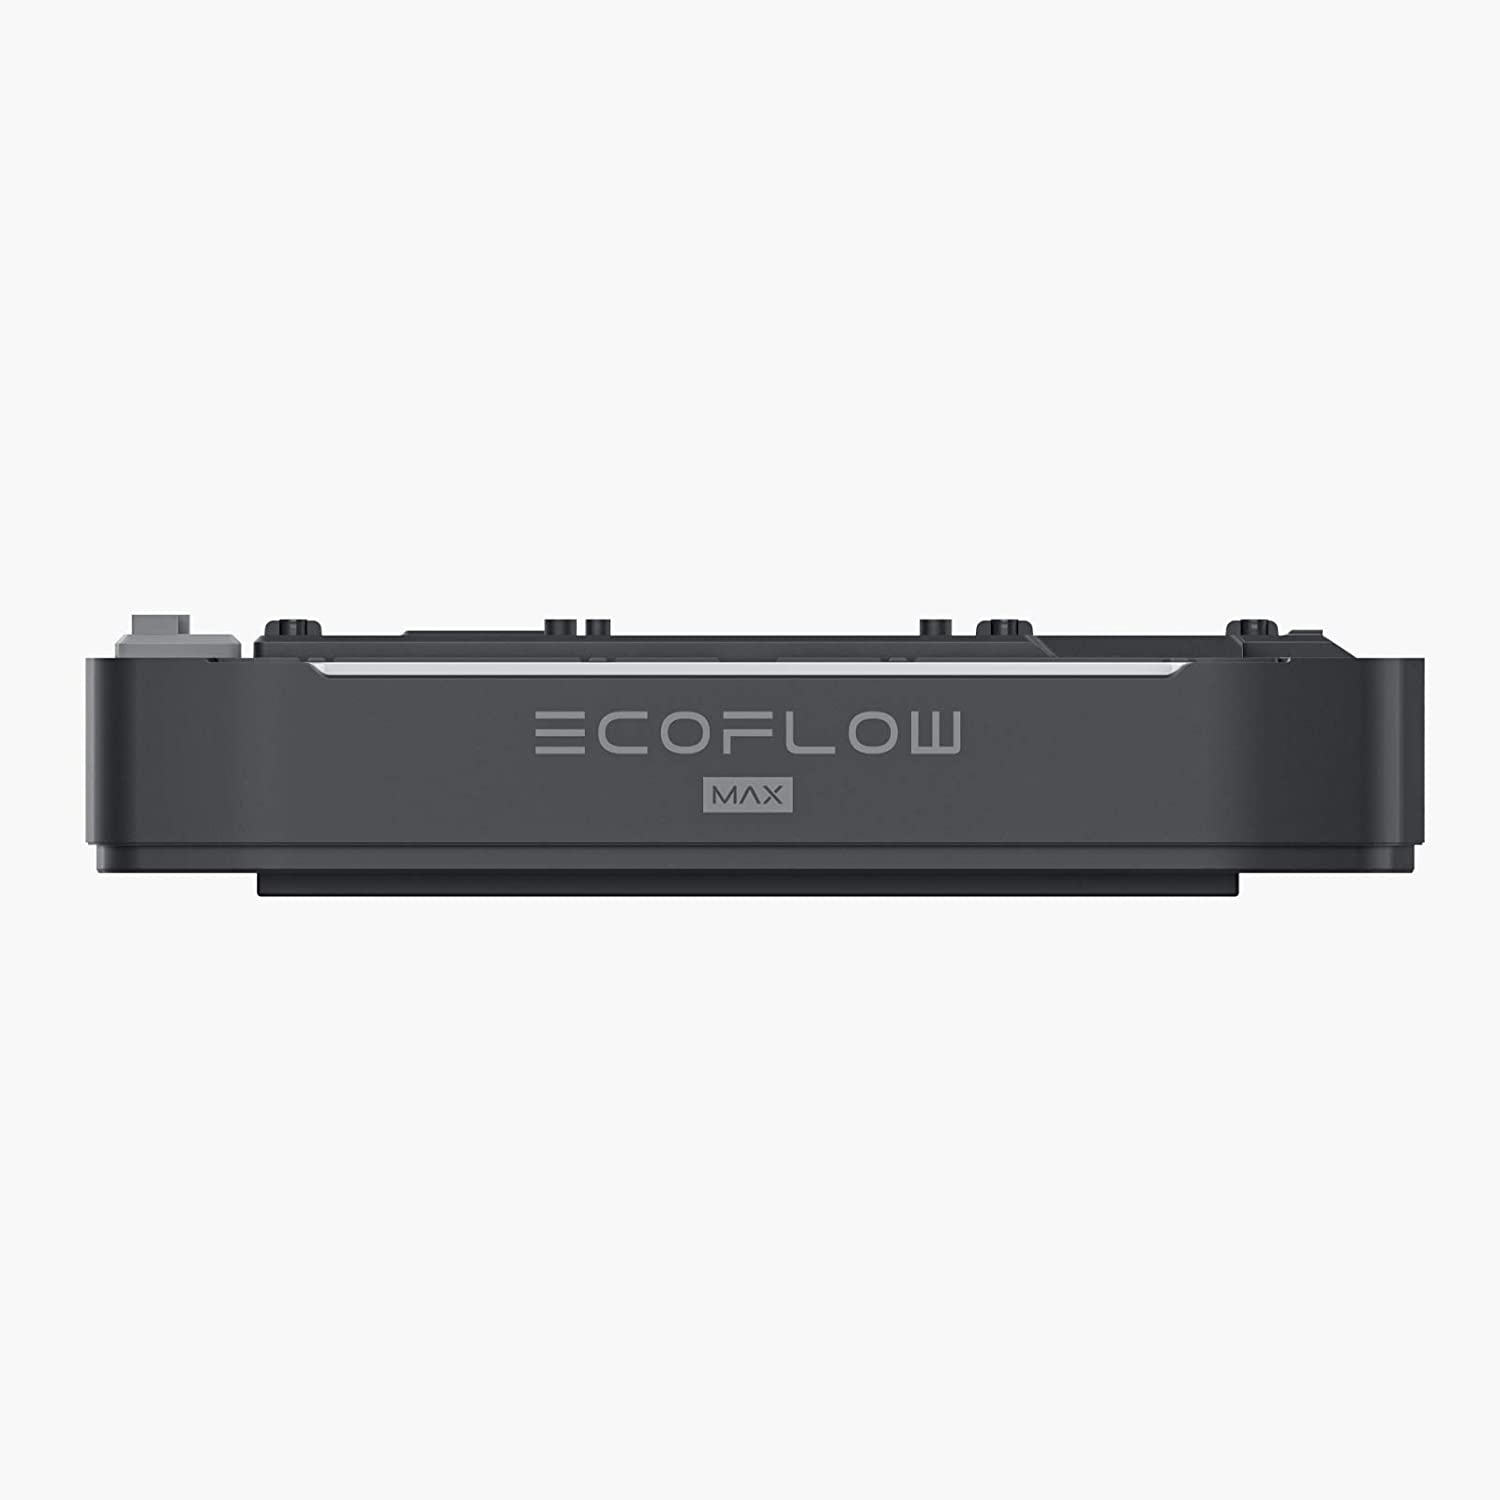 EF ECOFLOW RIVER EXTRA BATTERY, 288Wh Suitable for RIVER Solar Generator, Double Capacity, More Power, Backup Battery for Outdoor Camping RV